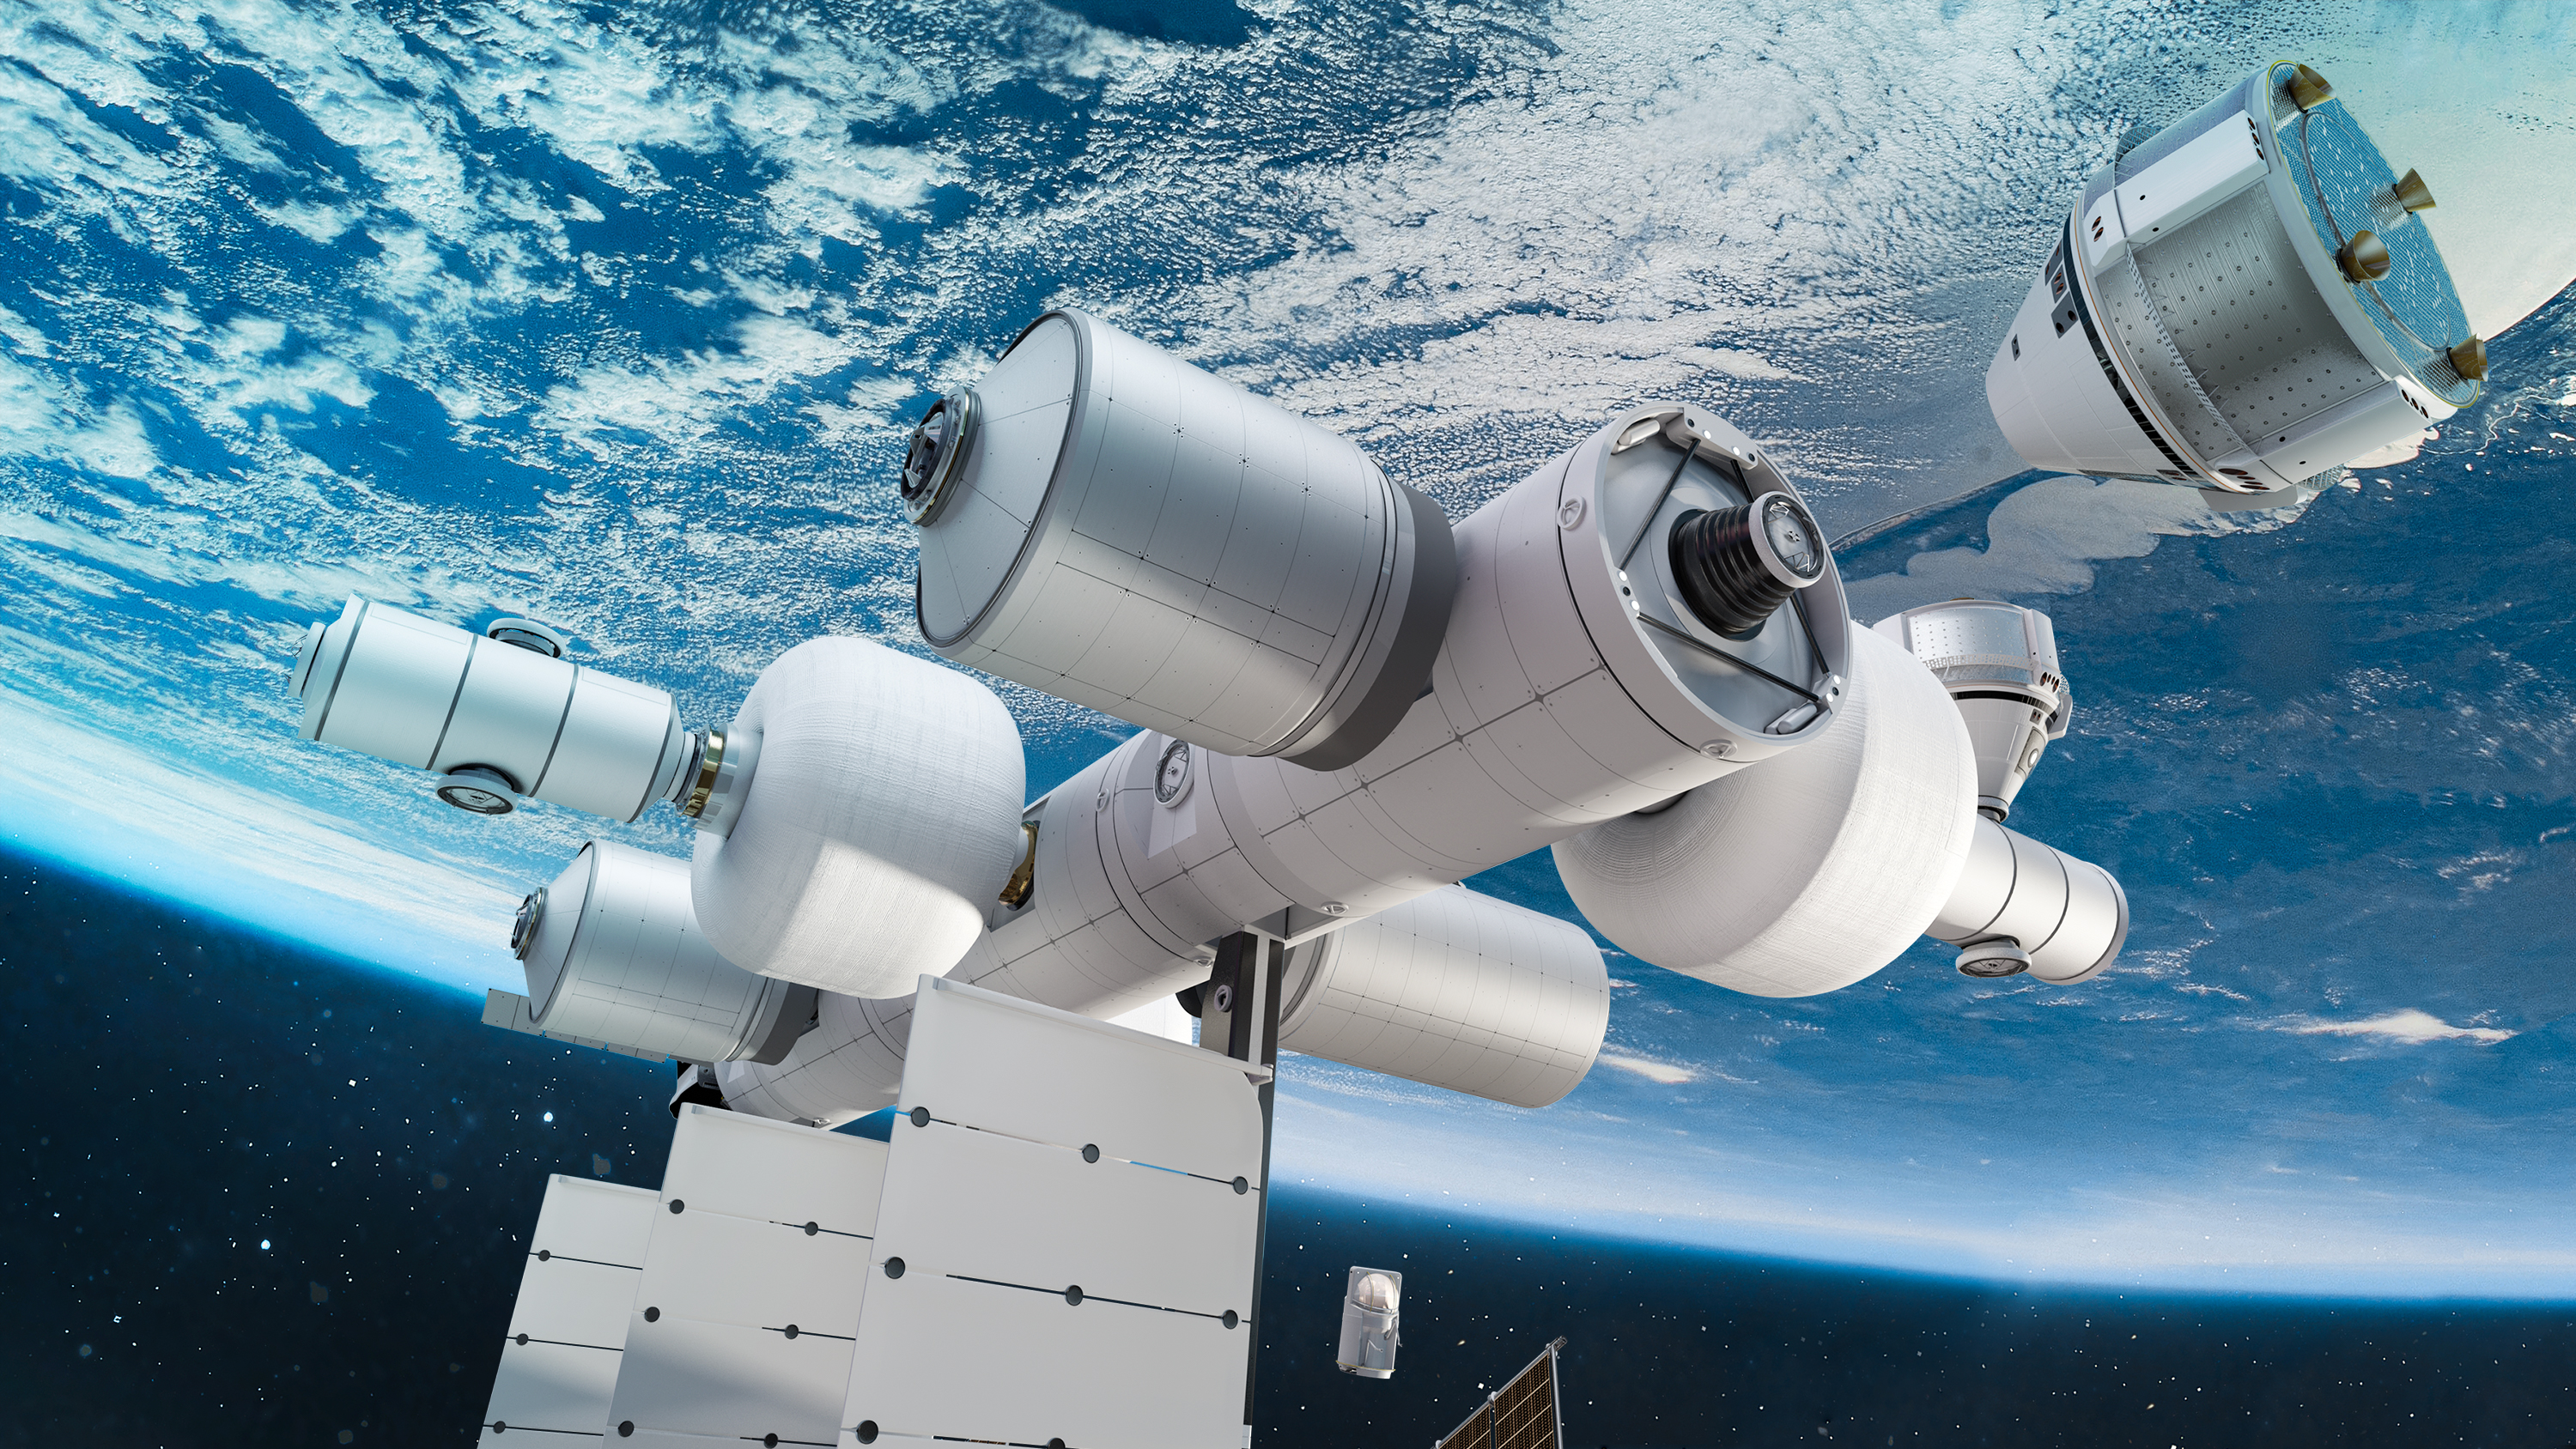 techcrunch.com - Aria Alamalhodaei - Blue Origin, Boeing and others join Sierra Space to build commercial space station